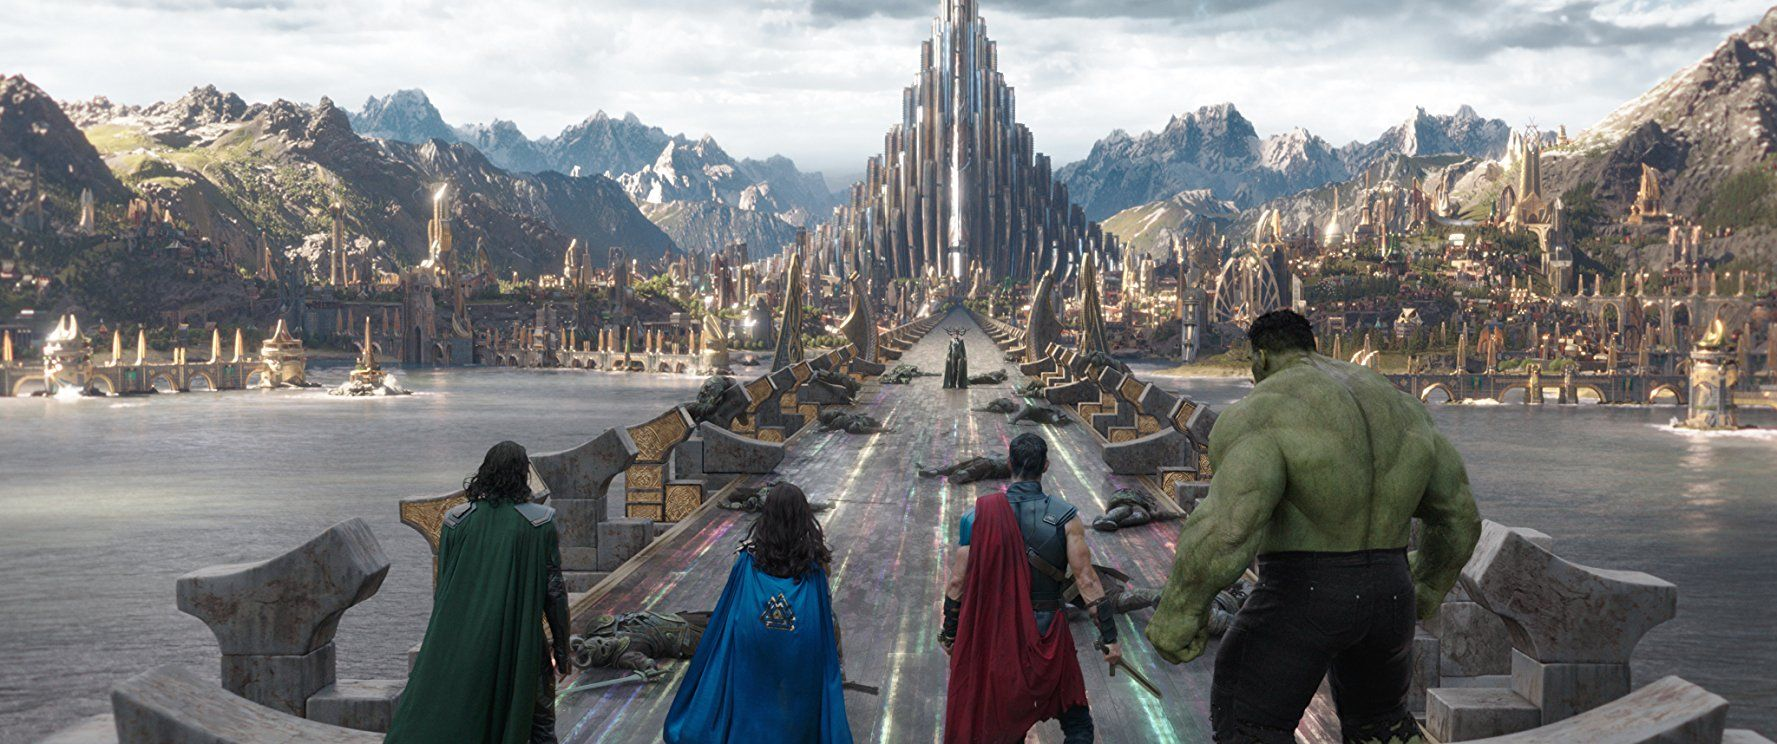 Loki, Valkyrie, Thor, and Hulk face off against Hela, who stands in front of an unguarded Asgard